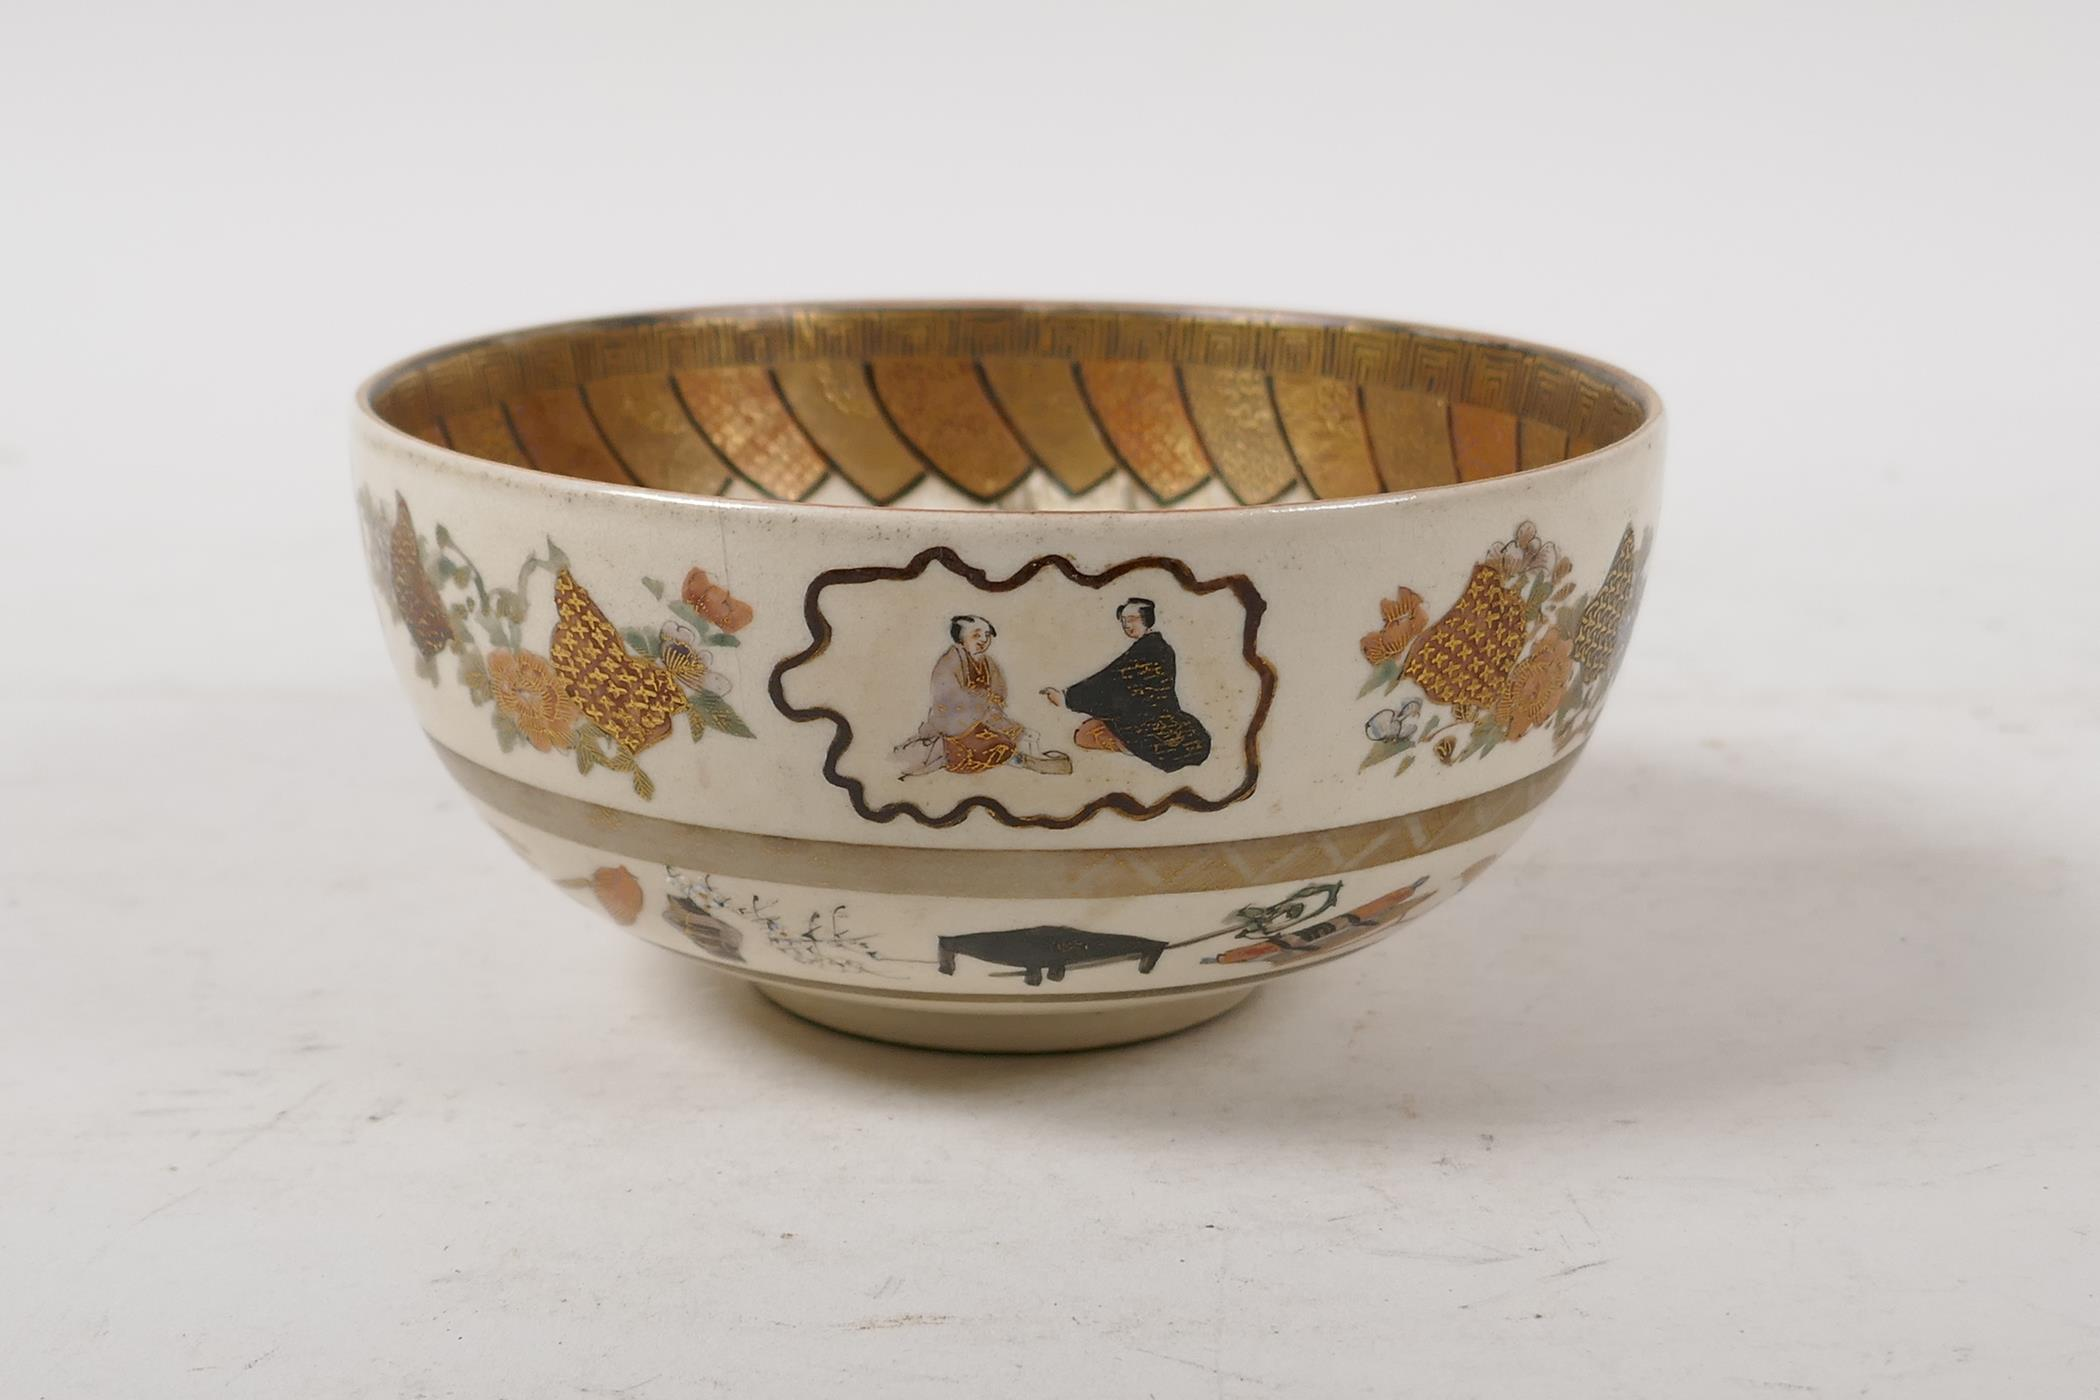 A Japanese meiji period satsuma bowl, decorated with children to the interior, the exterior with - Image 2 of 8